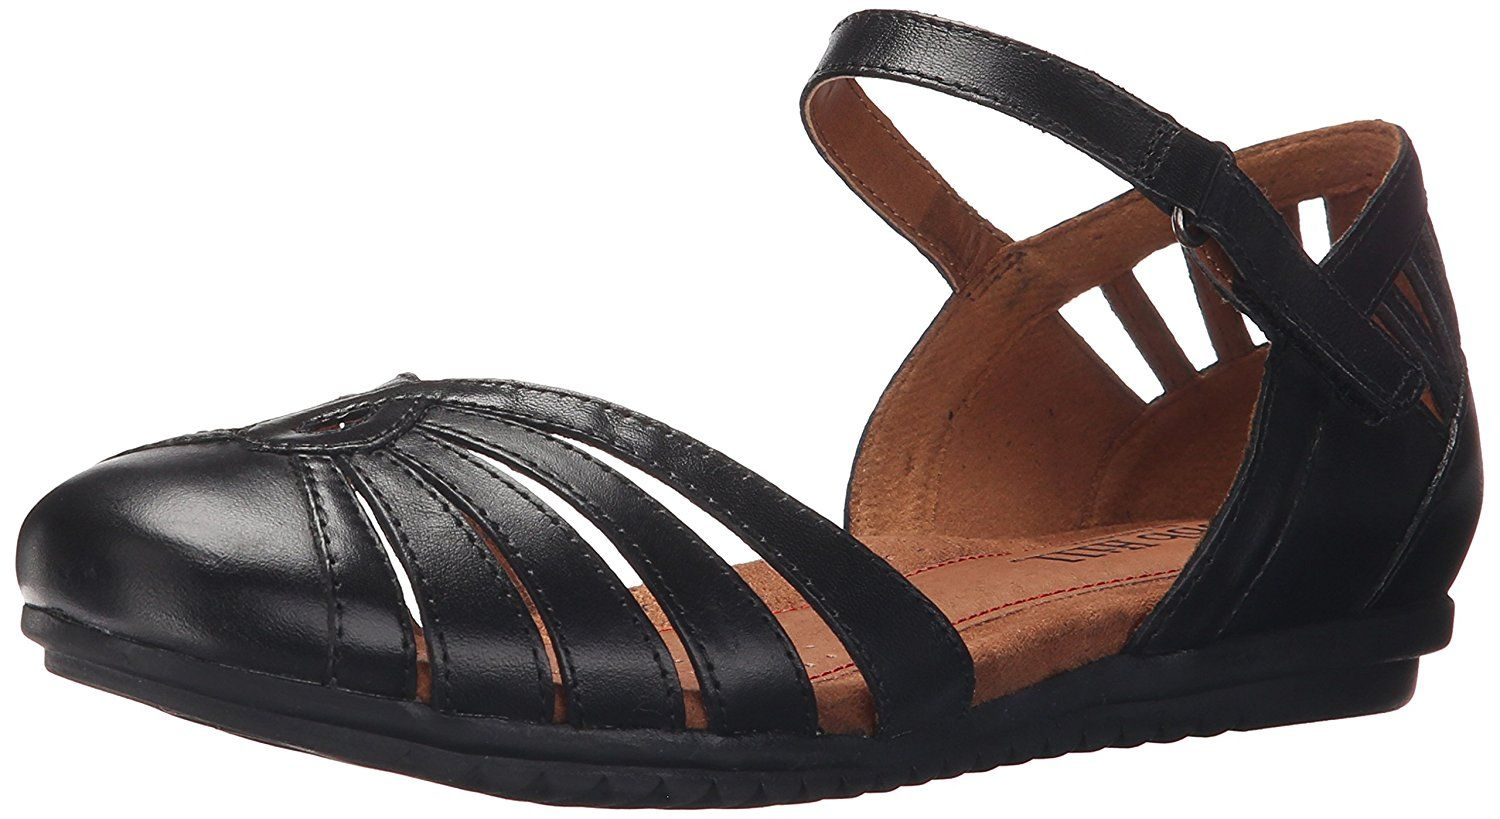 a8d9941fd Rockport Cobb Hill Women s Irene-CH Flat Sandal     Find out more details  by clicking the image   Closed toe sandals